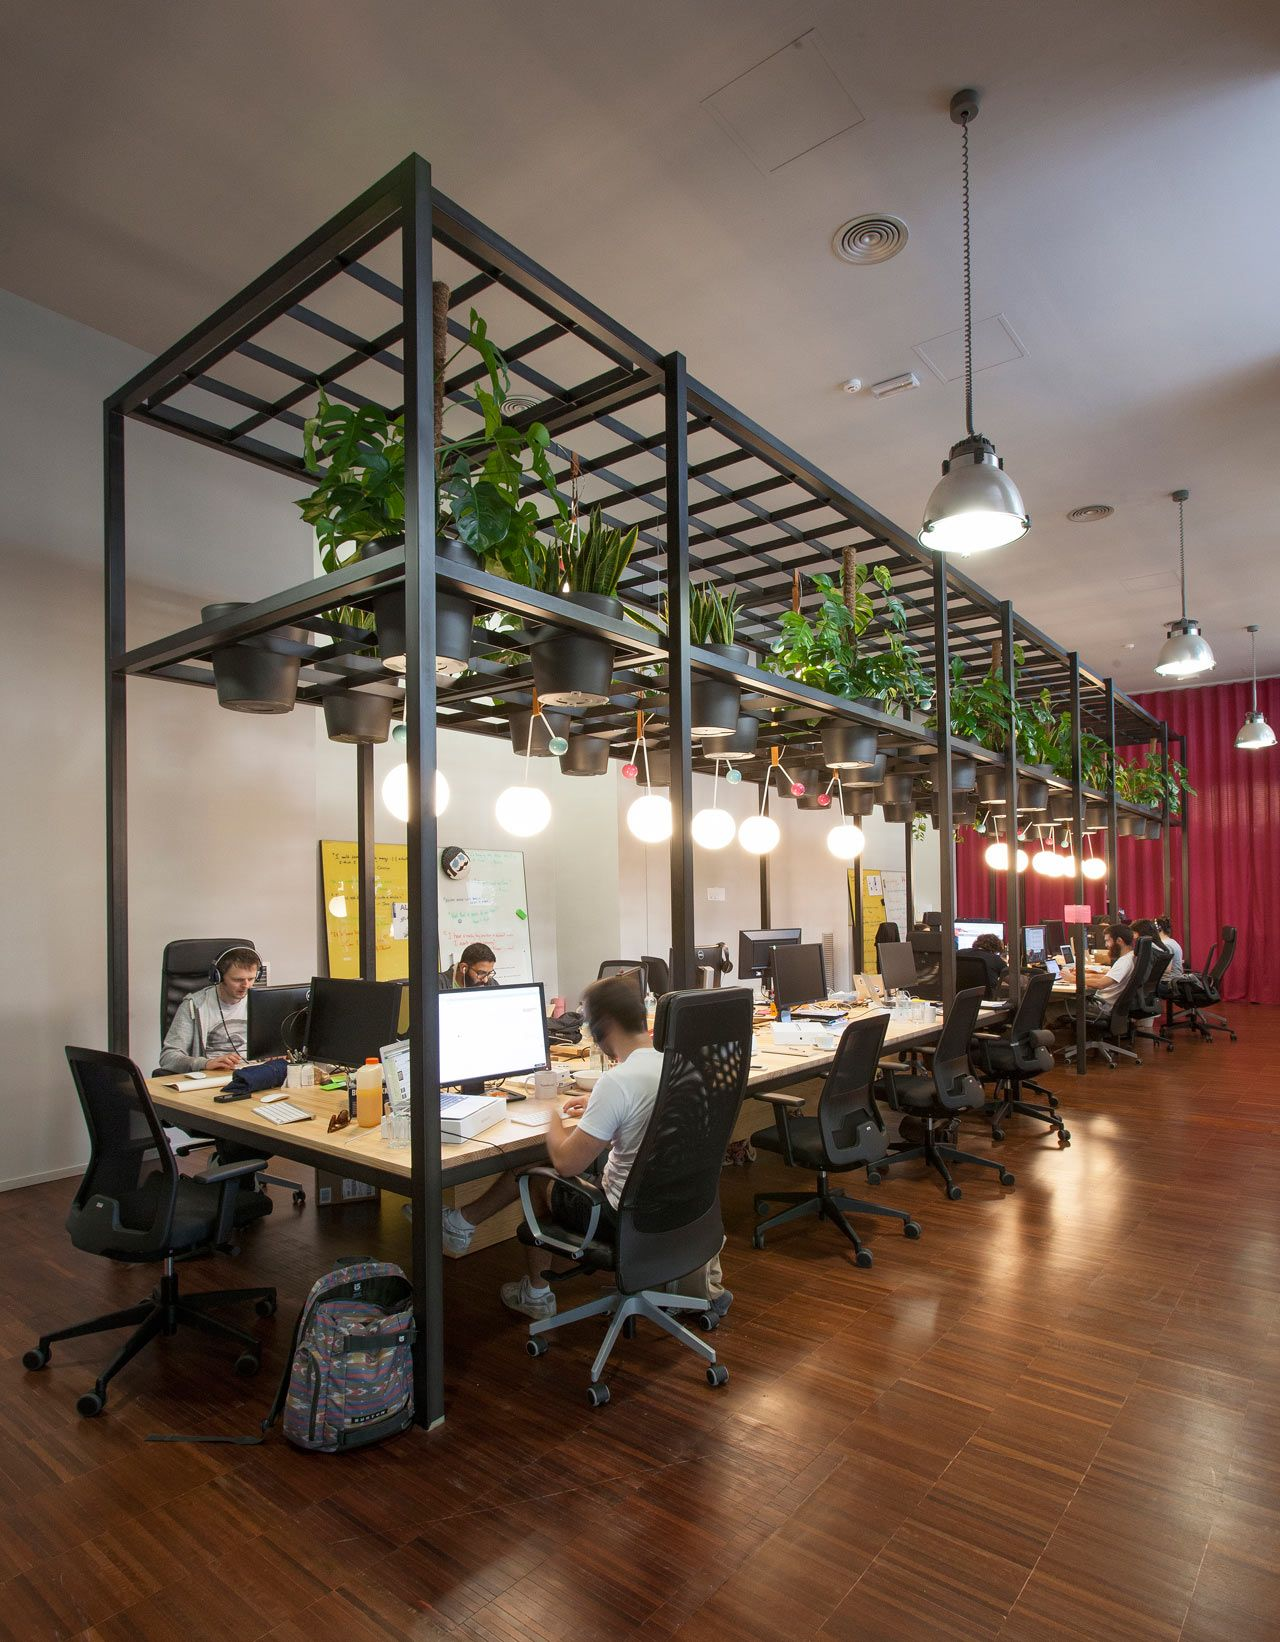 Commercial Grow Room Design: Barcelona-Based Startup Gets Unconventional Digs